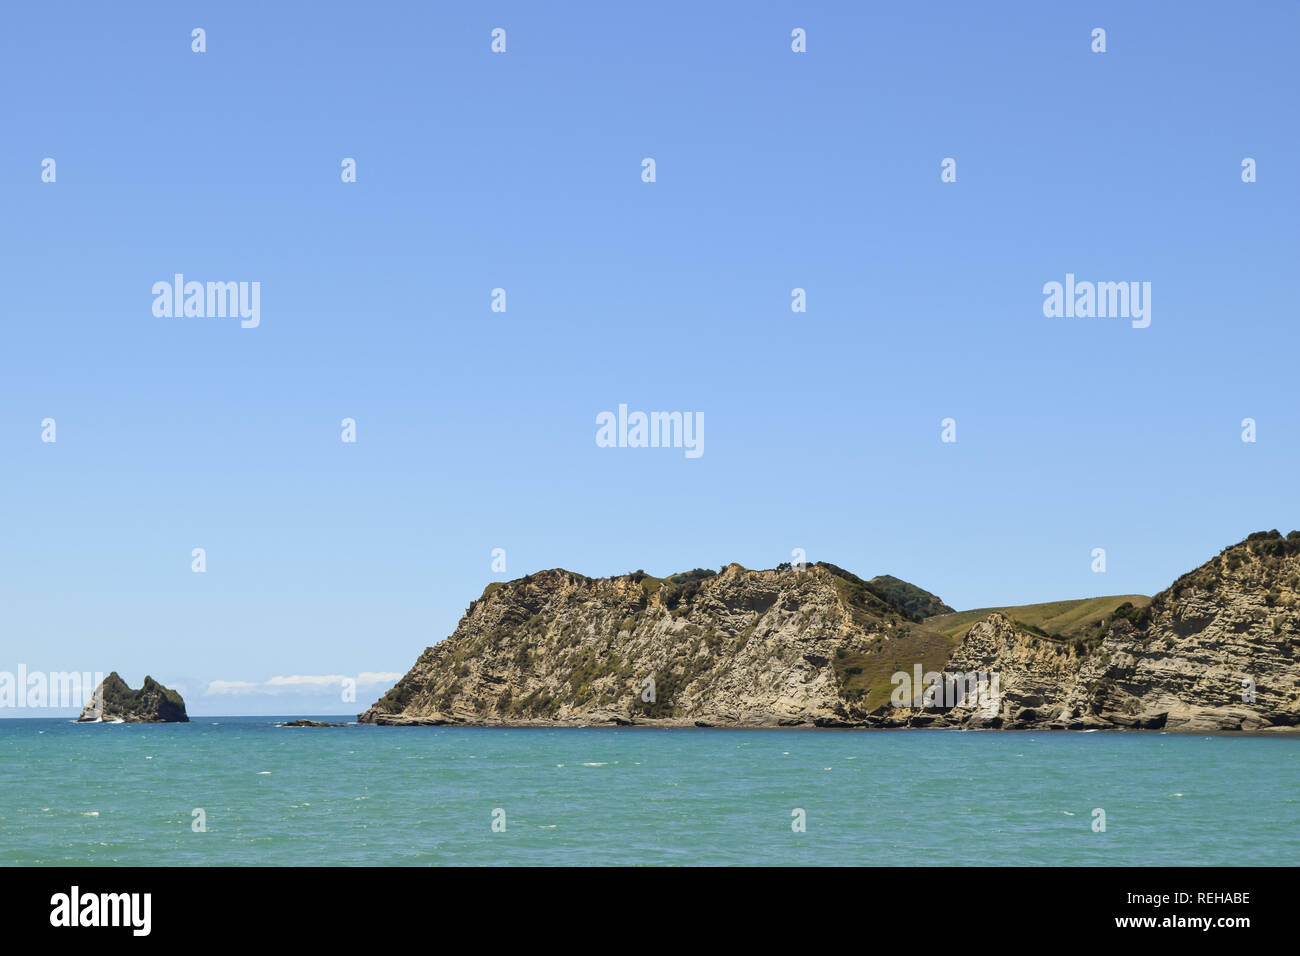 A small island seen at the end of the beach wharf in Tolaga Bay, New Zealand - Stock Image